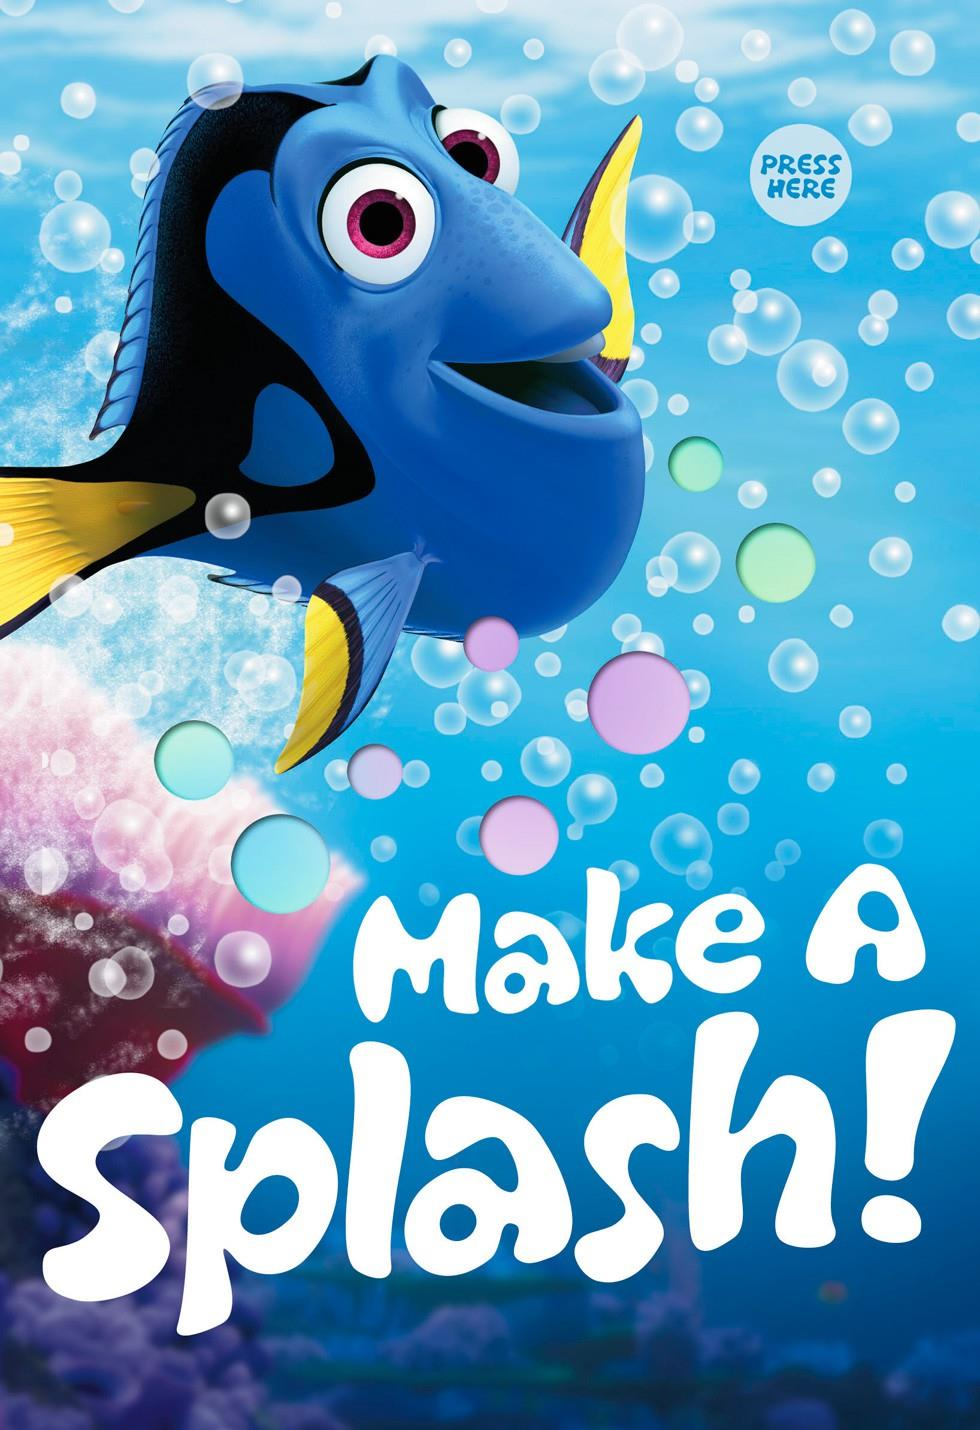 Make A Splash Kids Birthday Light And Song Card Greeting